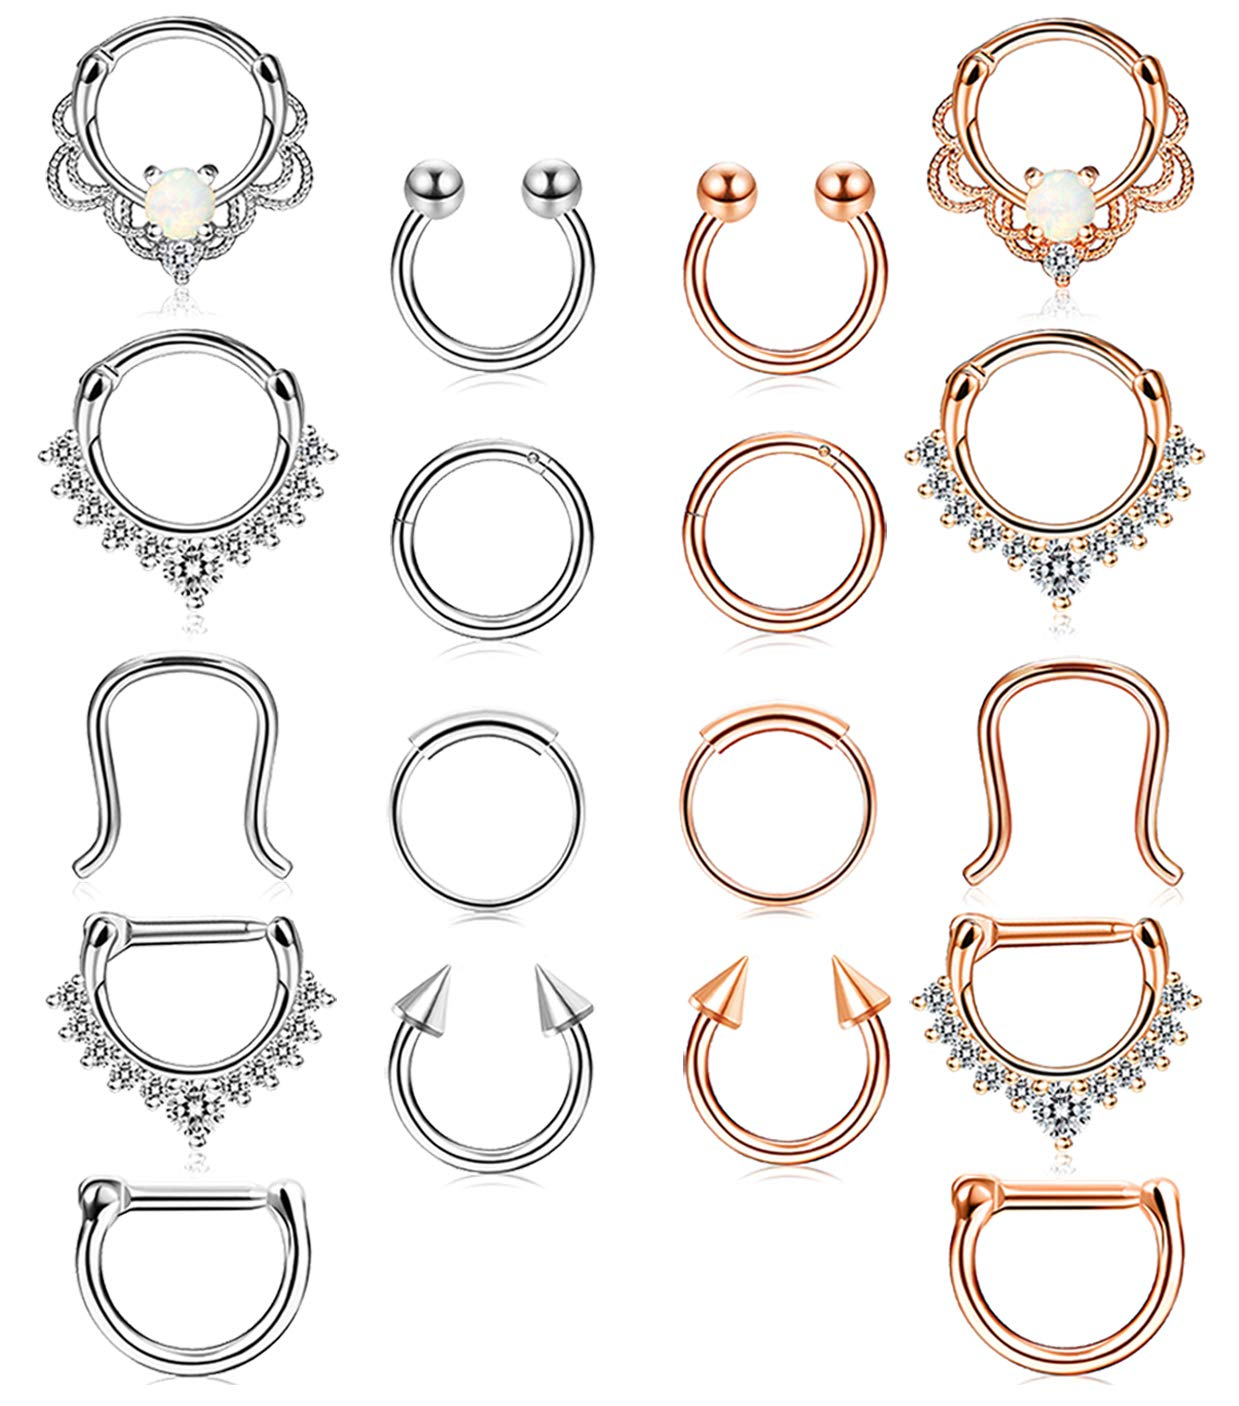 Udalyn 18 Pcs Stainless Steel Septum Hoop Nose Rings Cartilage Rings Clicker CZ Body Piercing Jewelry by Udalyn